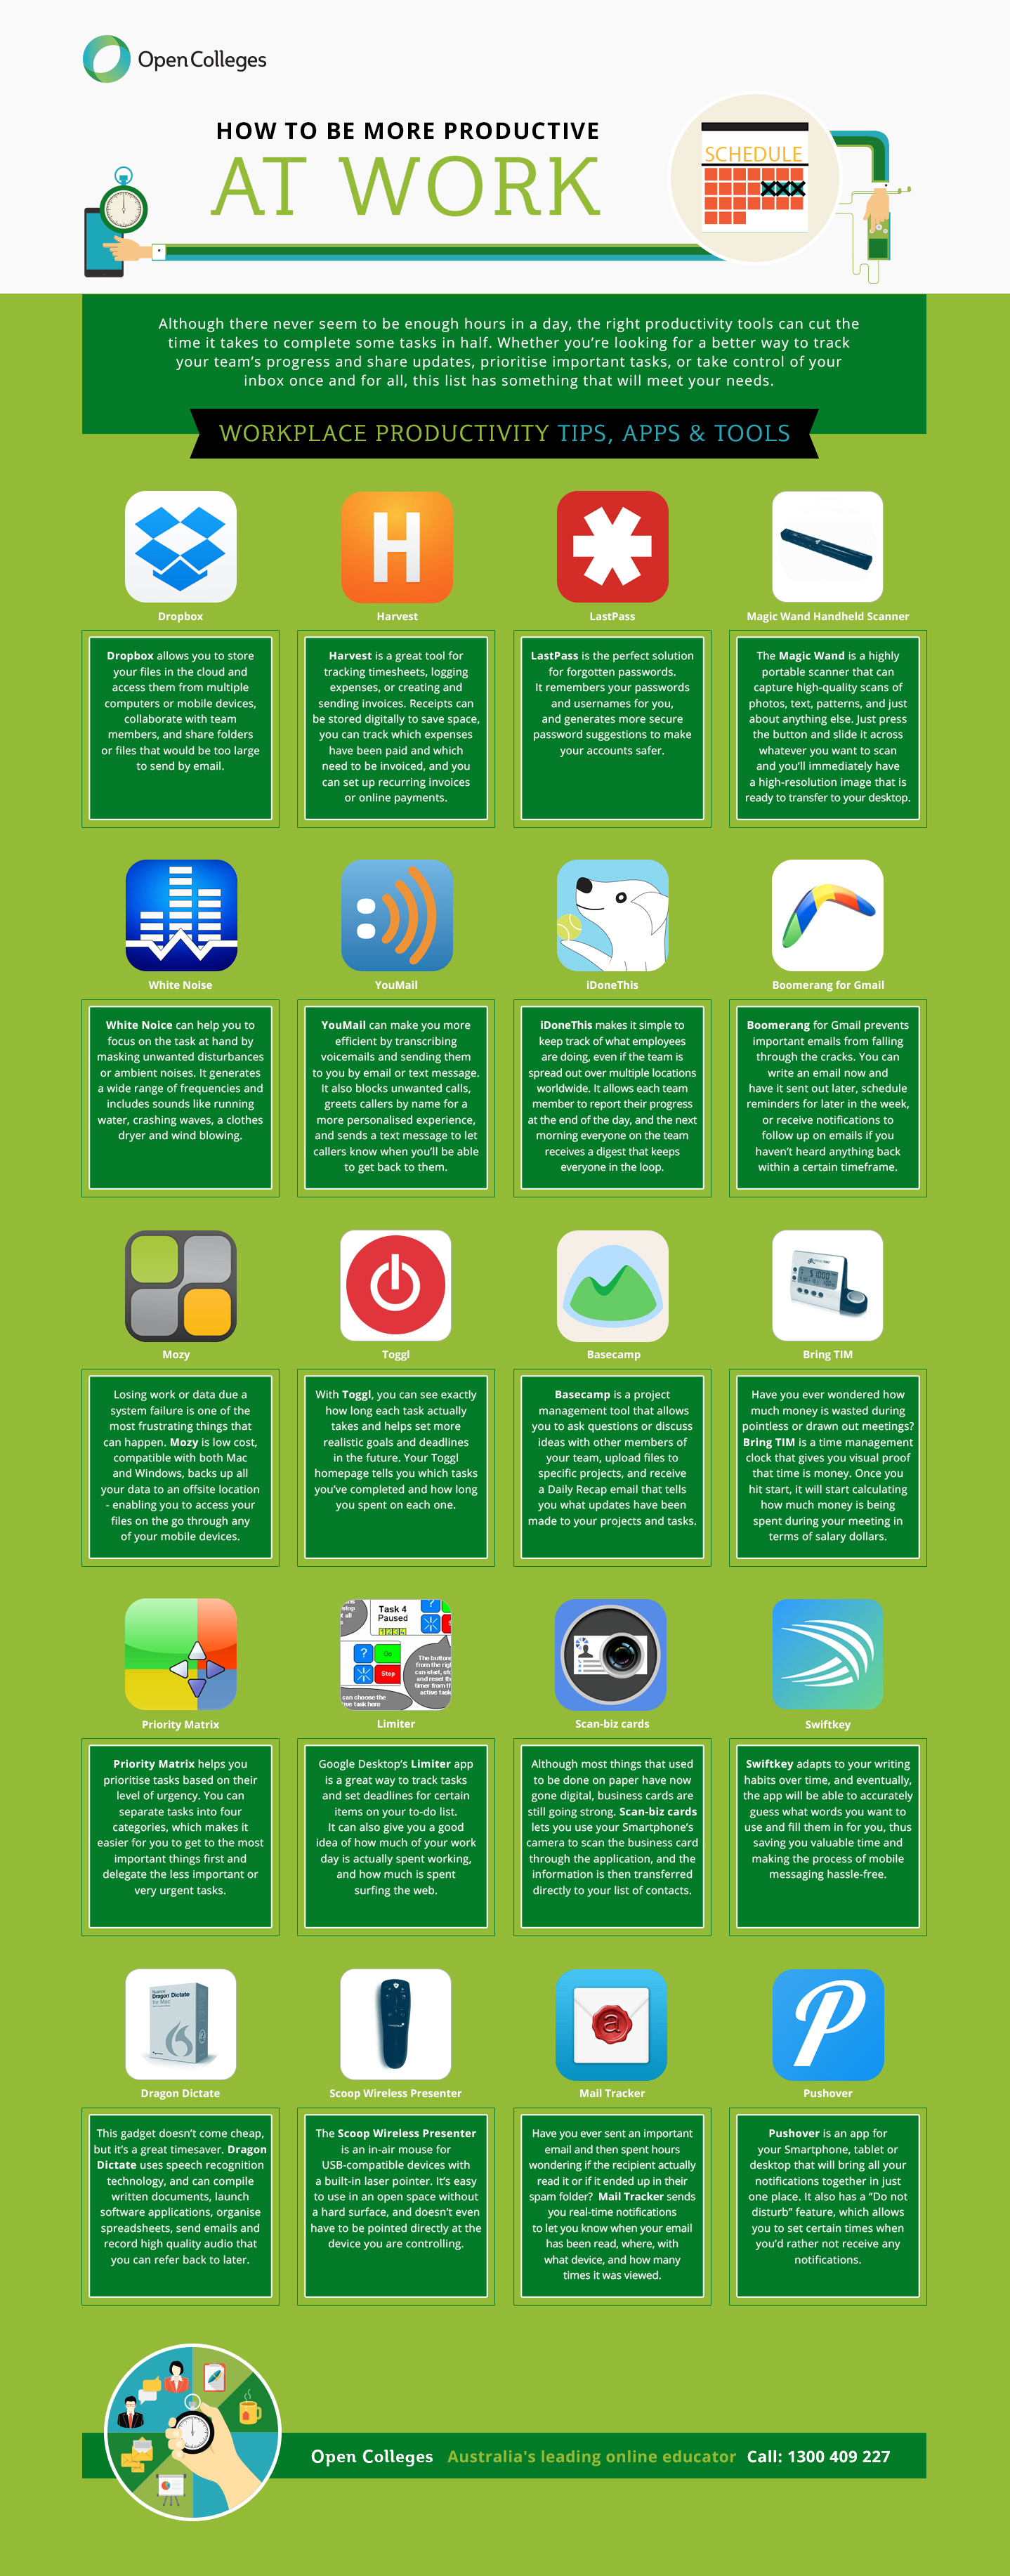 Apps-for-productivity-at-work